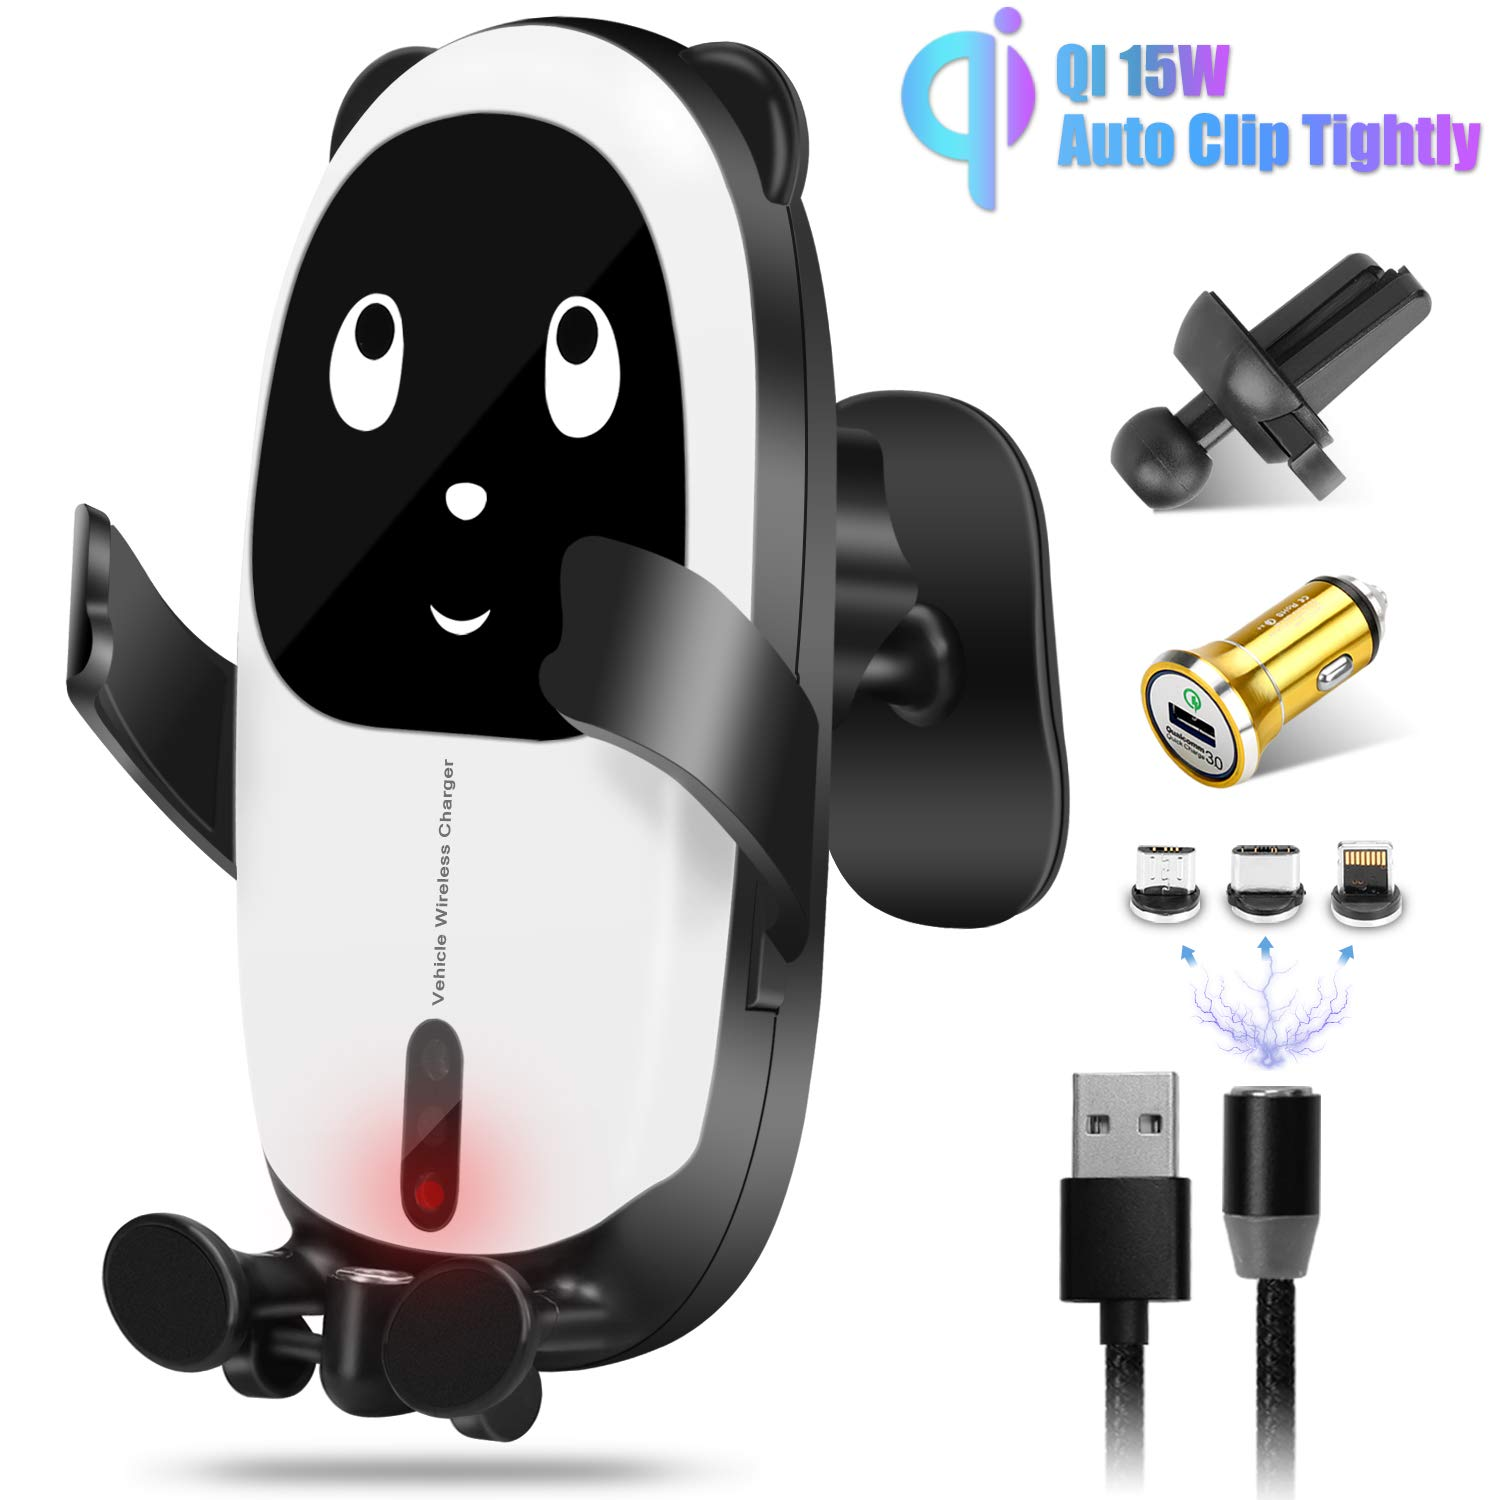 Gokey Wireless QI Car Charger Mount 15W Fast Charging Auto-Clamping Infrared Sensing Windshield Dashboard Air Vent Phone Holder Compatible with iPhone 11/11Pro/Xs MAX/XR/X/8/7/6 Samsung S10/S9 by Gokey